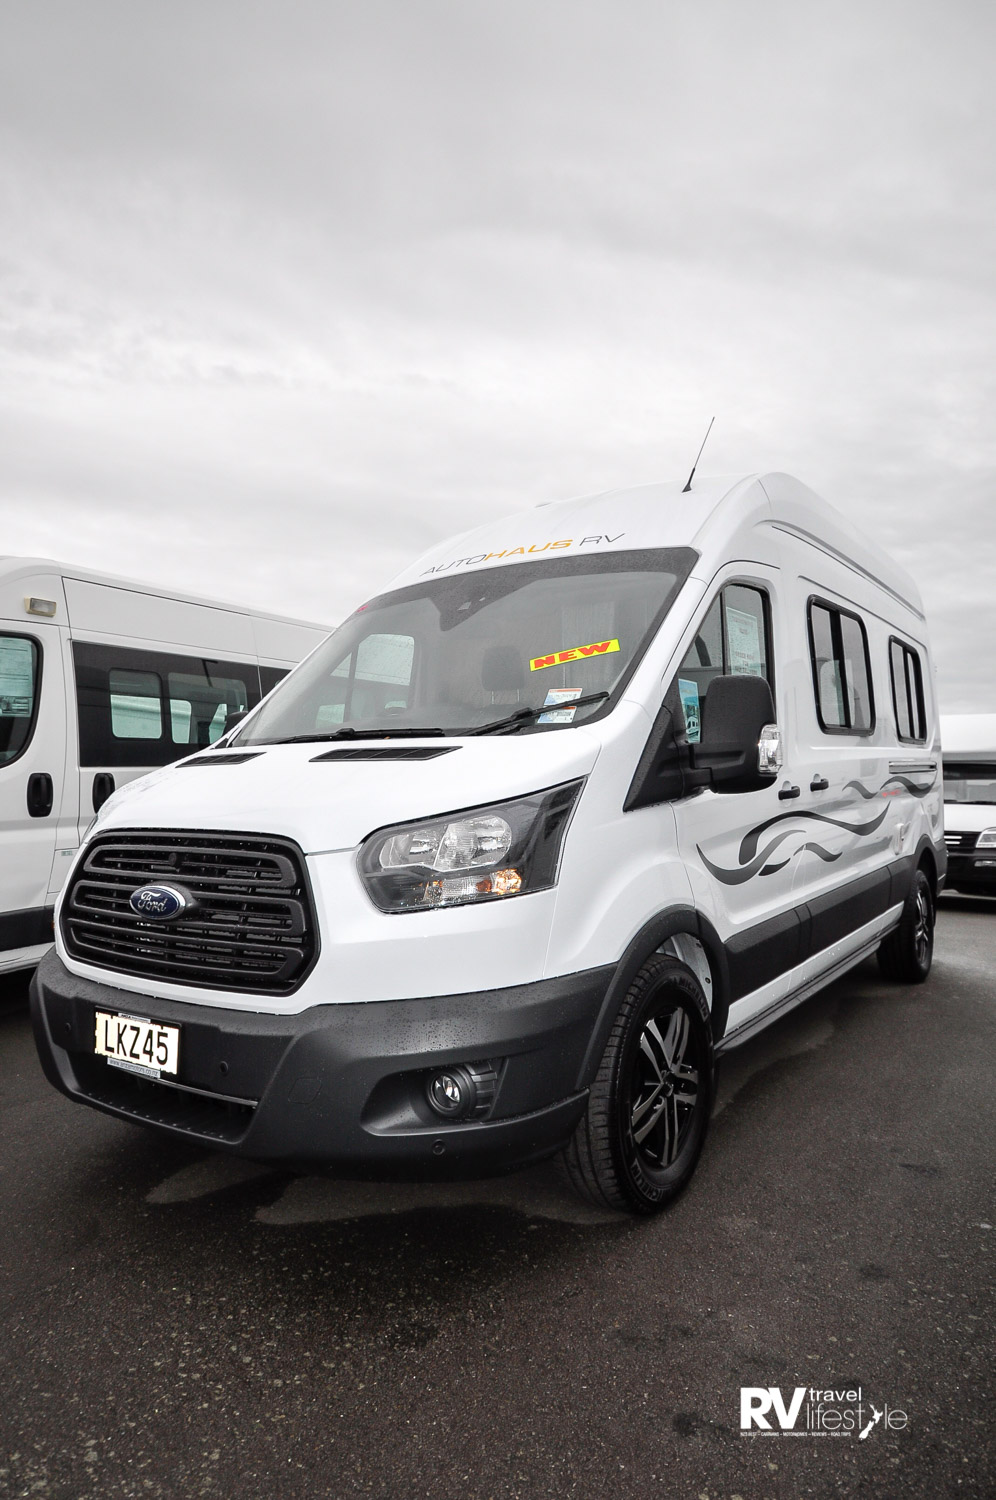 Based on the Ford Transit this is a fully self-contained camper van